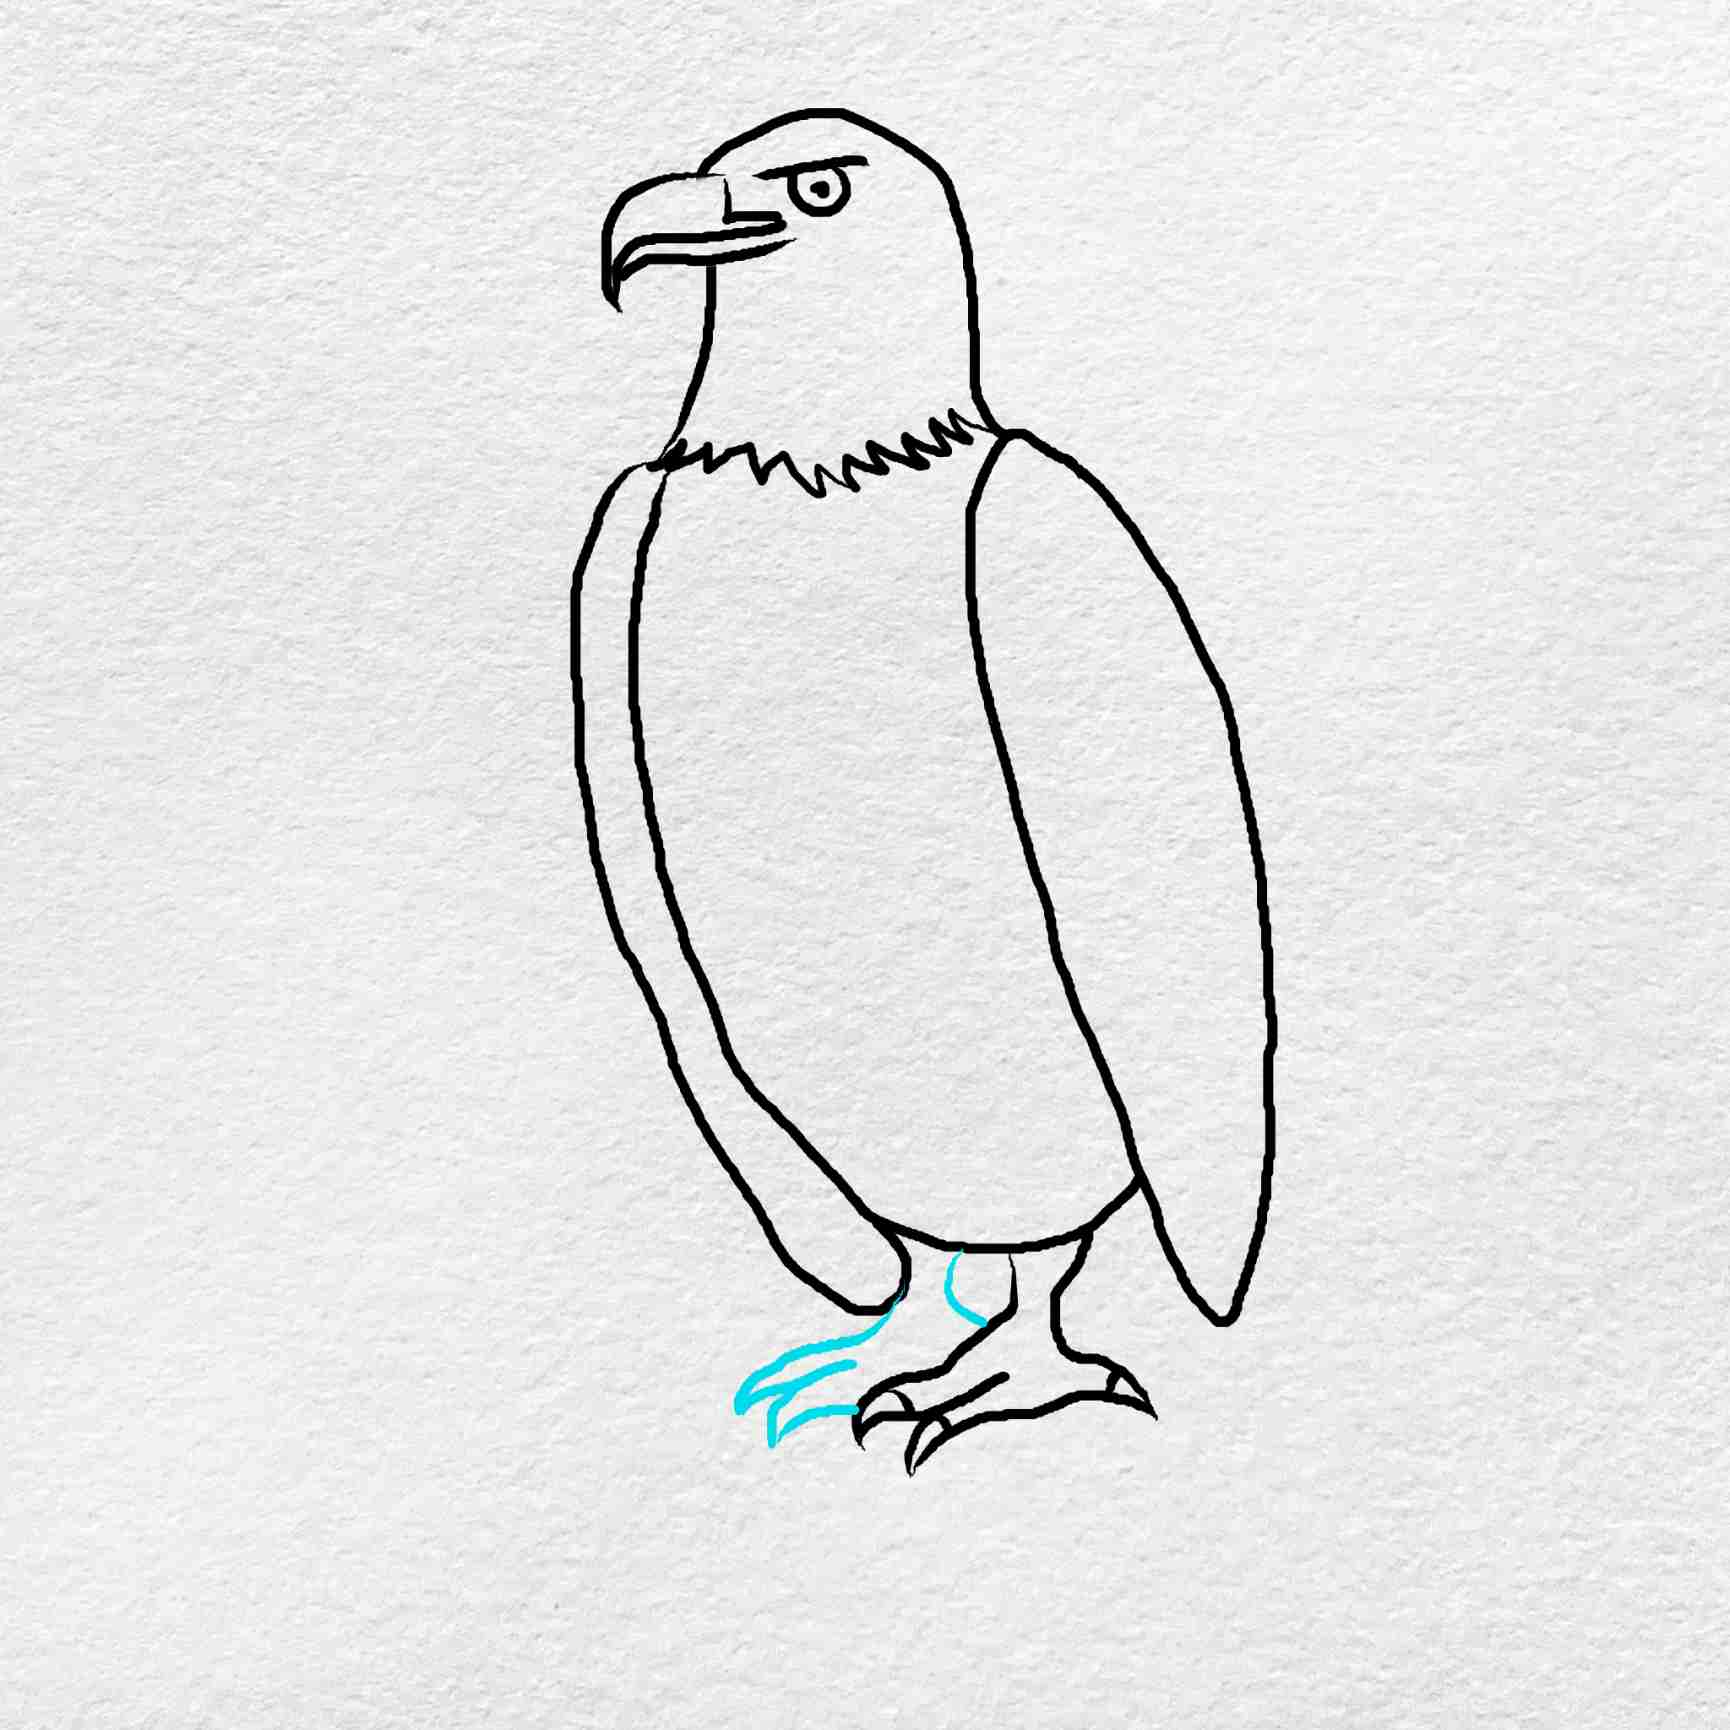 How To Draw An Eagle Easy: Step 7